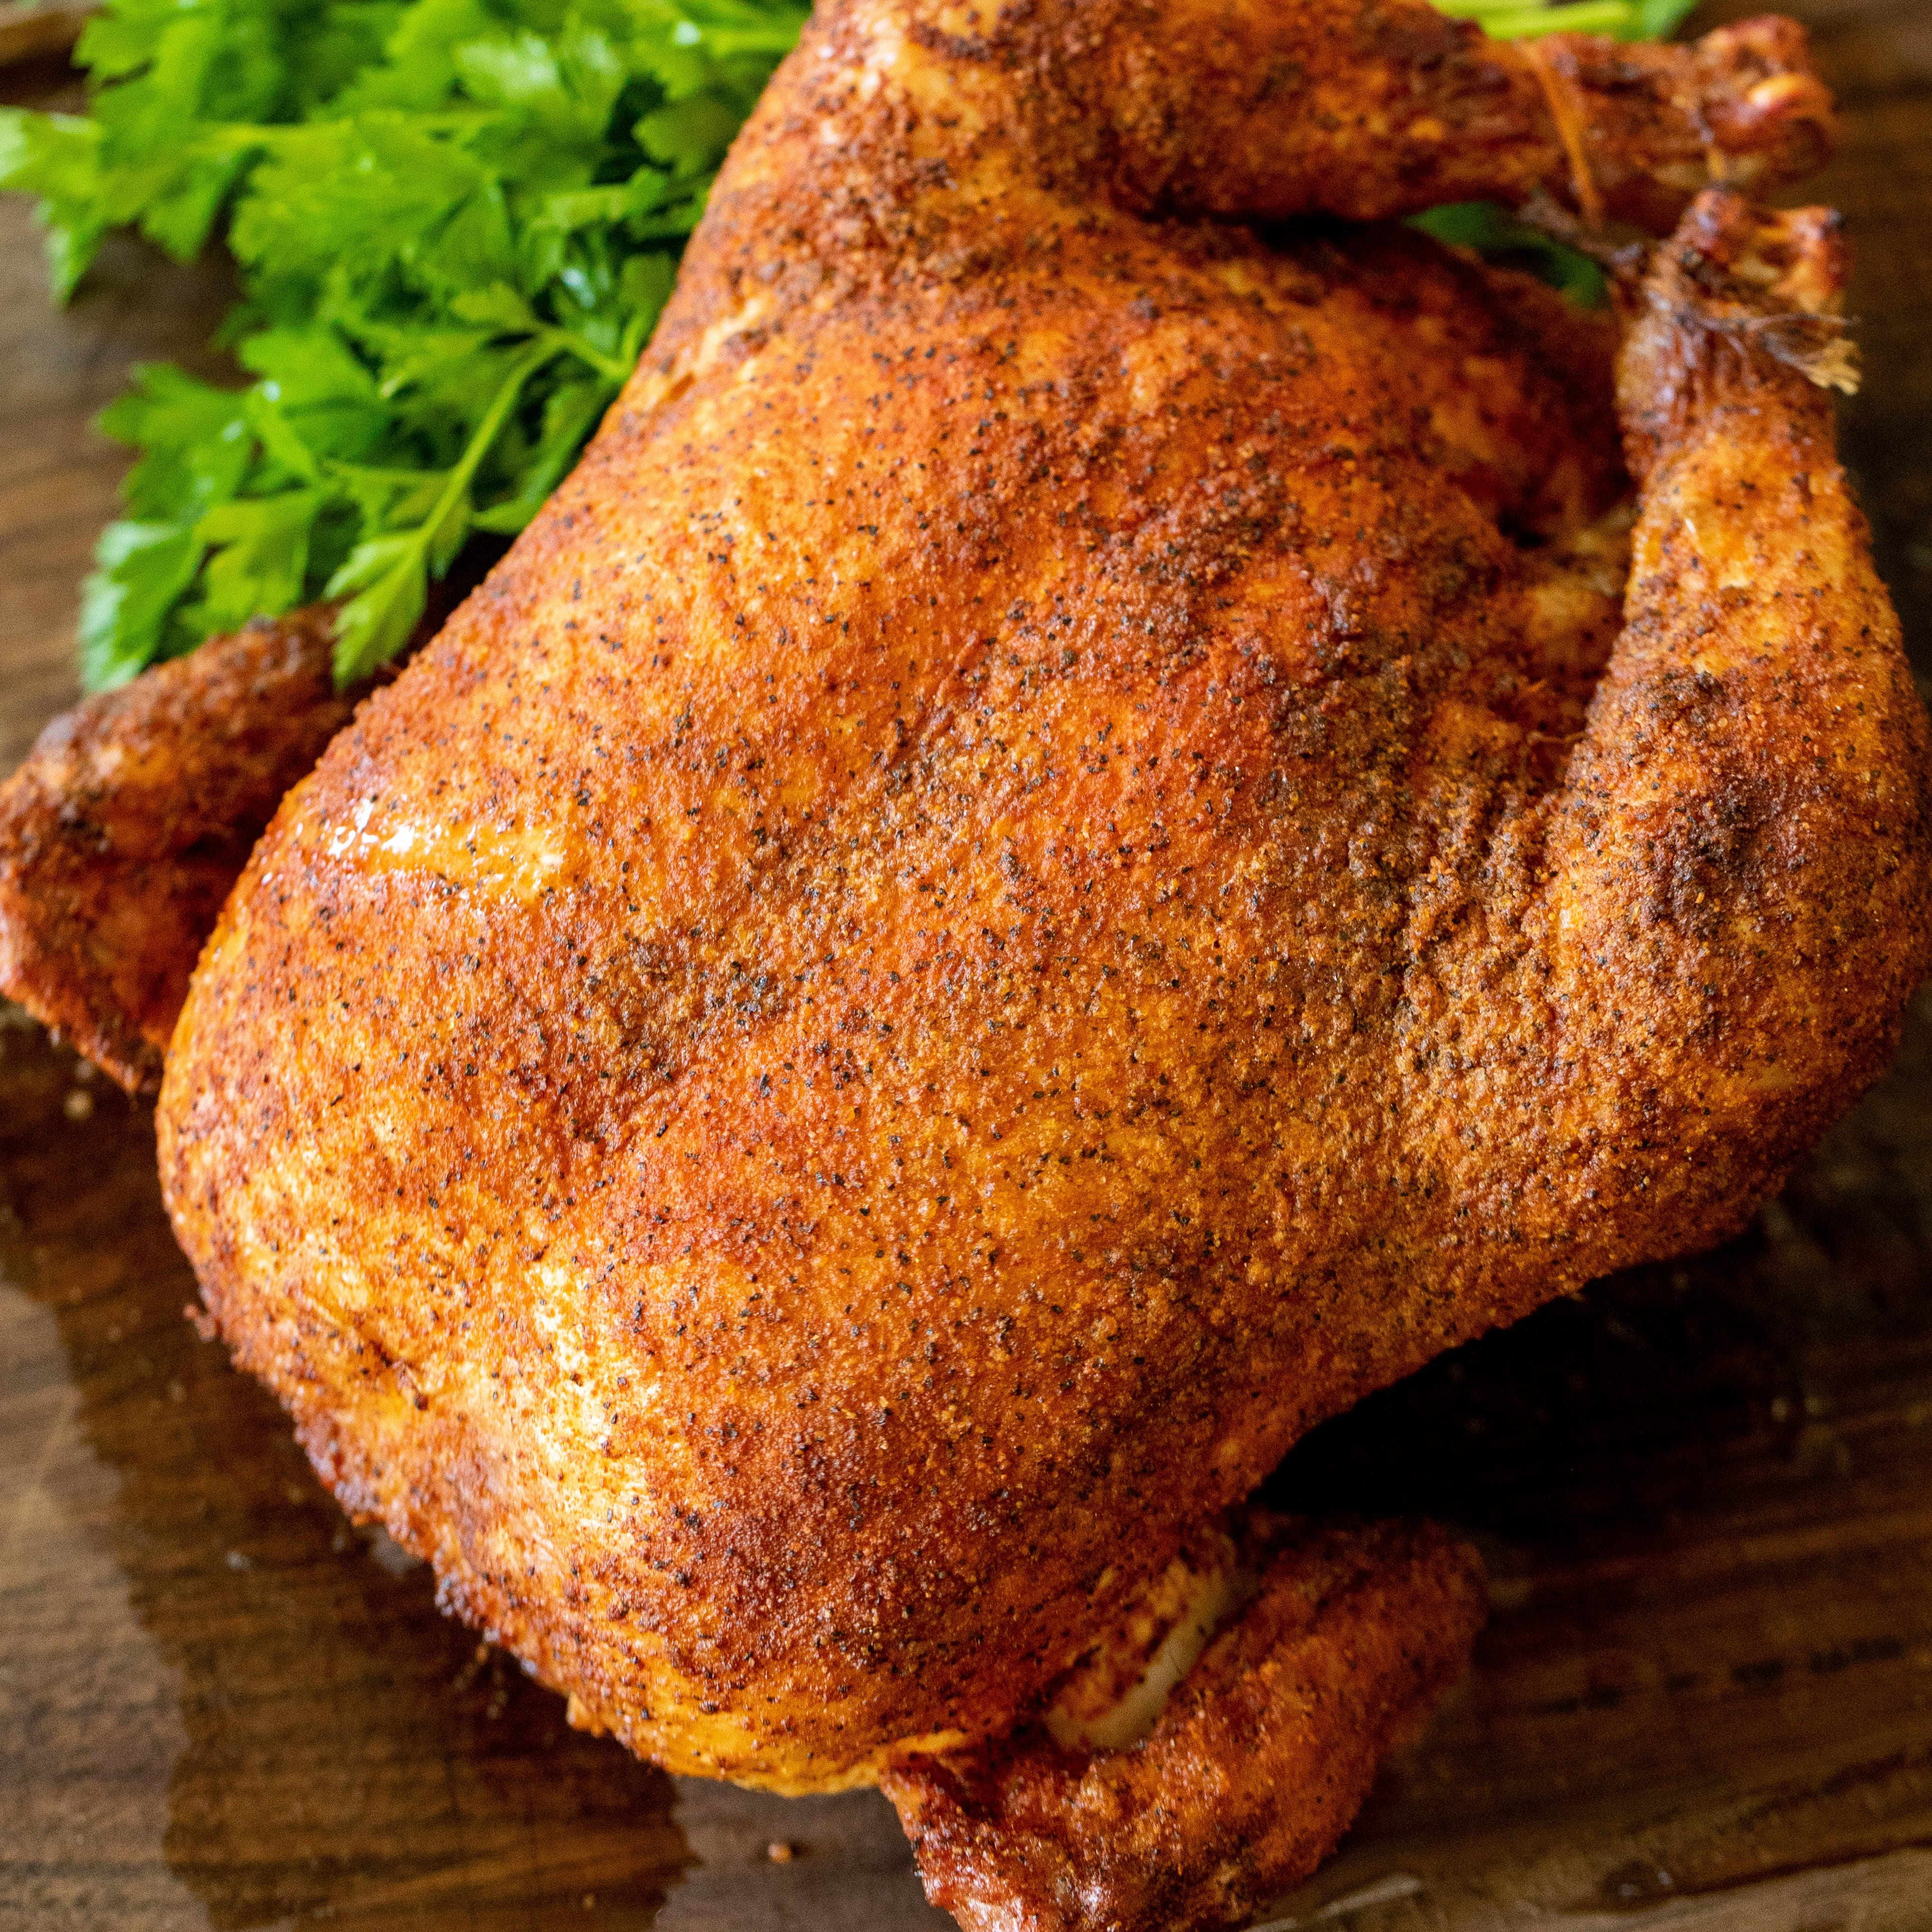 Smoked whole chicken on a wooden cutting board next to fresh herbs.